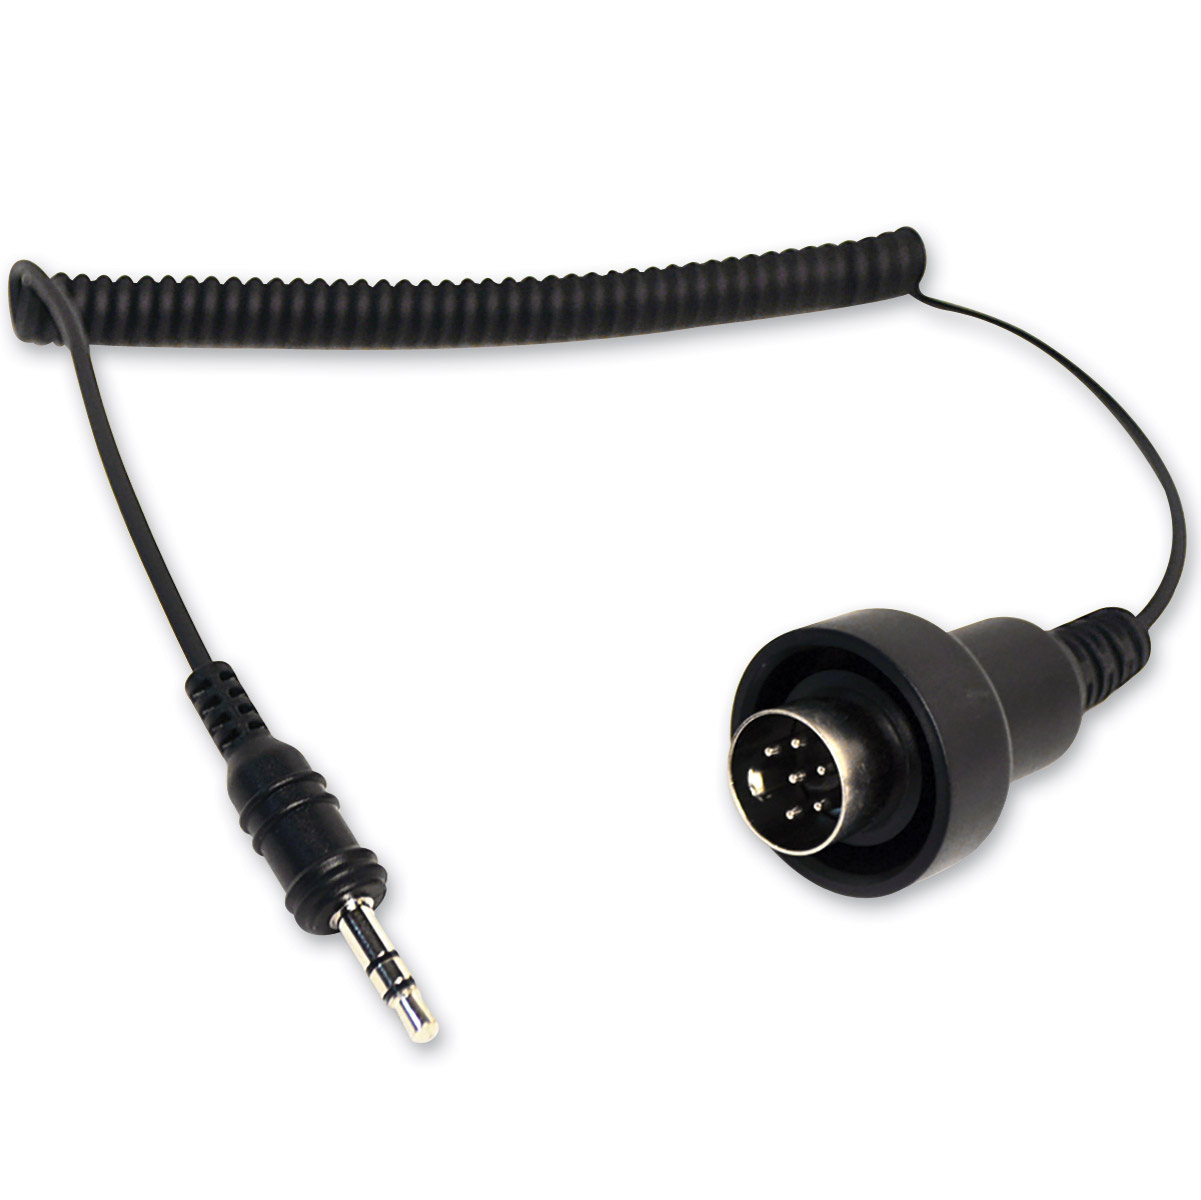 Sena Technologies SM10 3.5mm Stereo Jack to 6 pin DIN Cable for BMW K1200LT Audio Systems